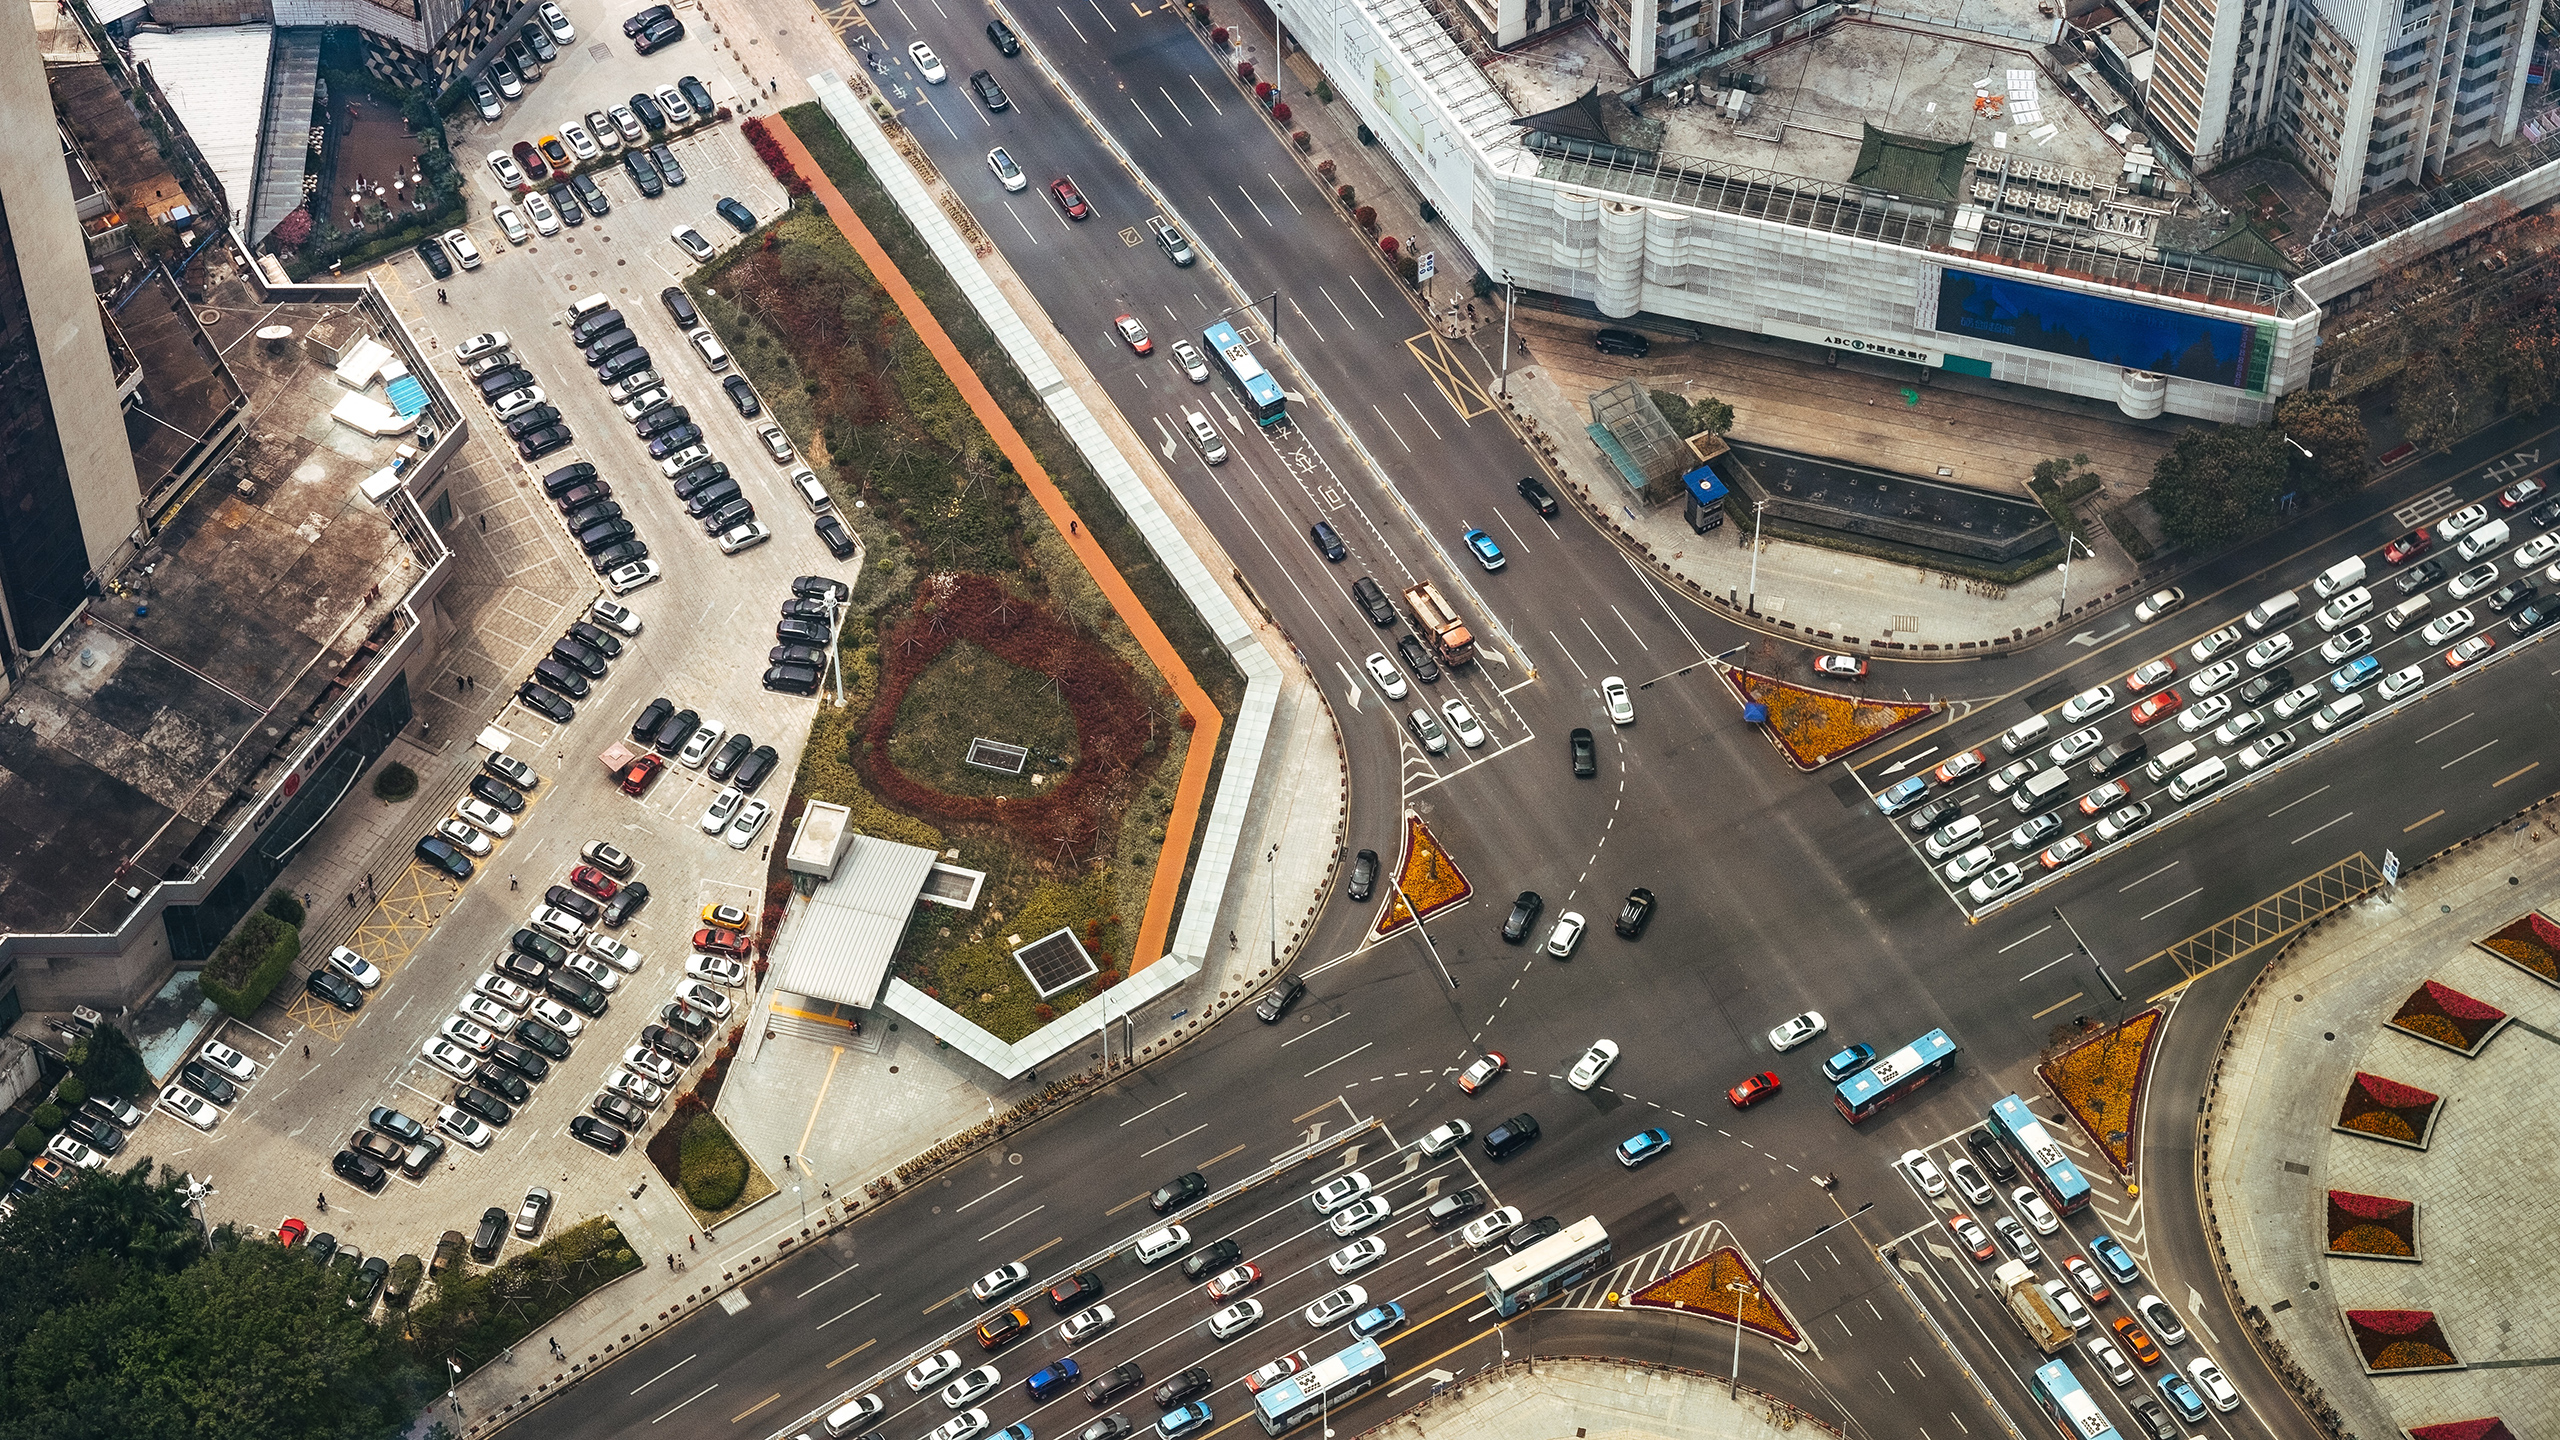 Large crossing with cars from above in China (Photo: Unsplash)